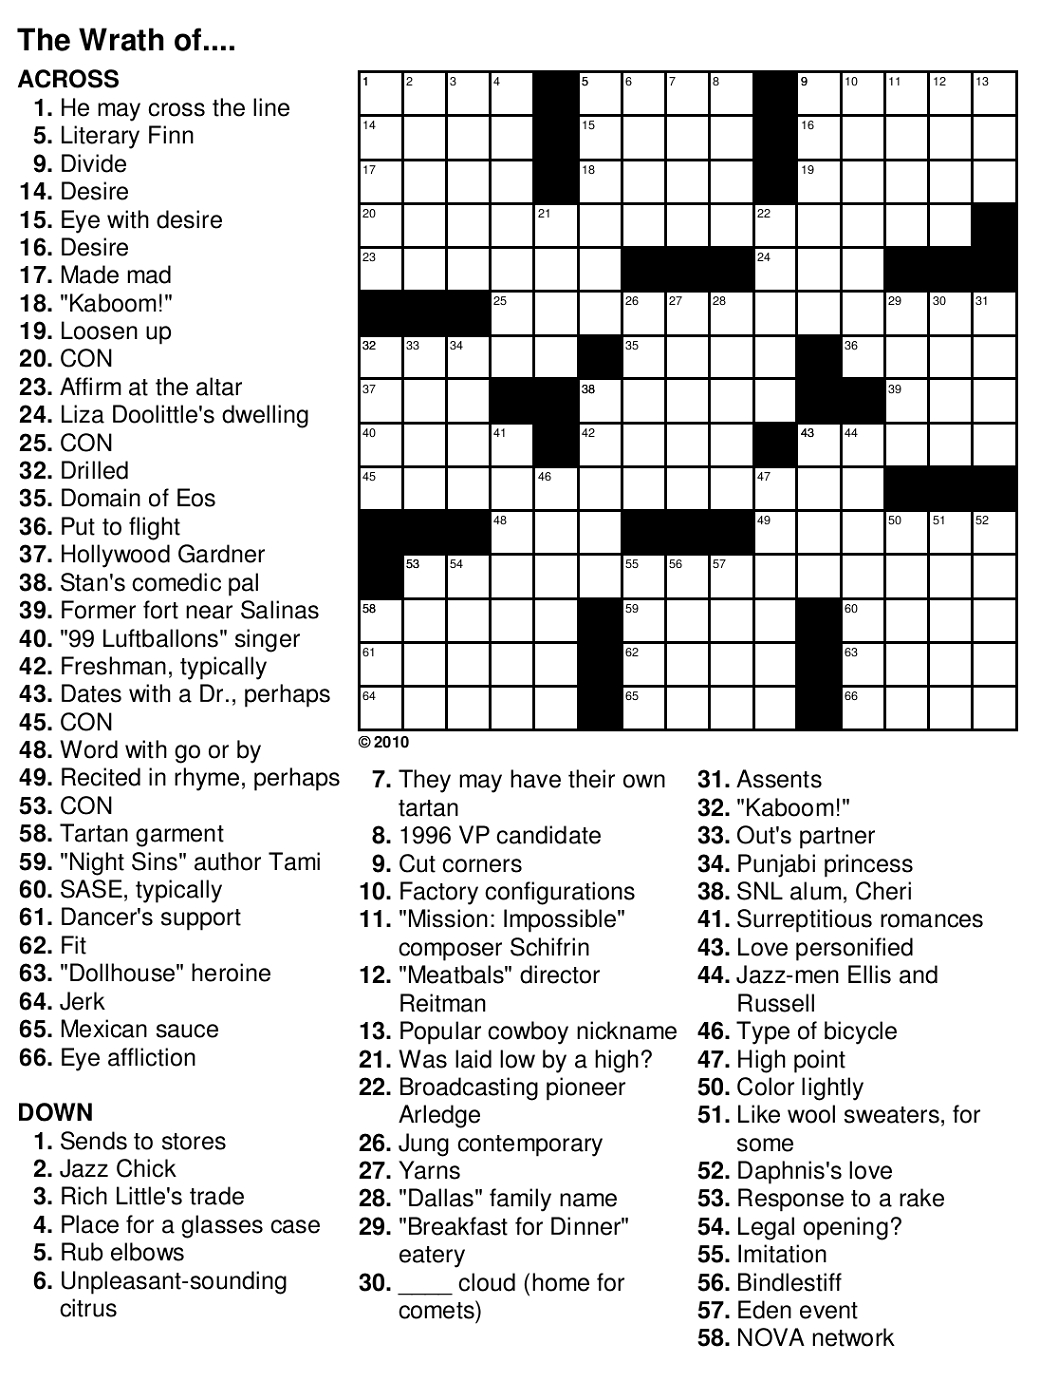 Easy Crossword Puzzles For Seniors | Activity Shelter - Printable Puzzles For Seniors